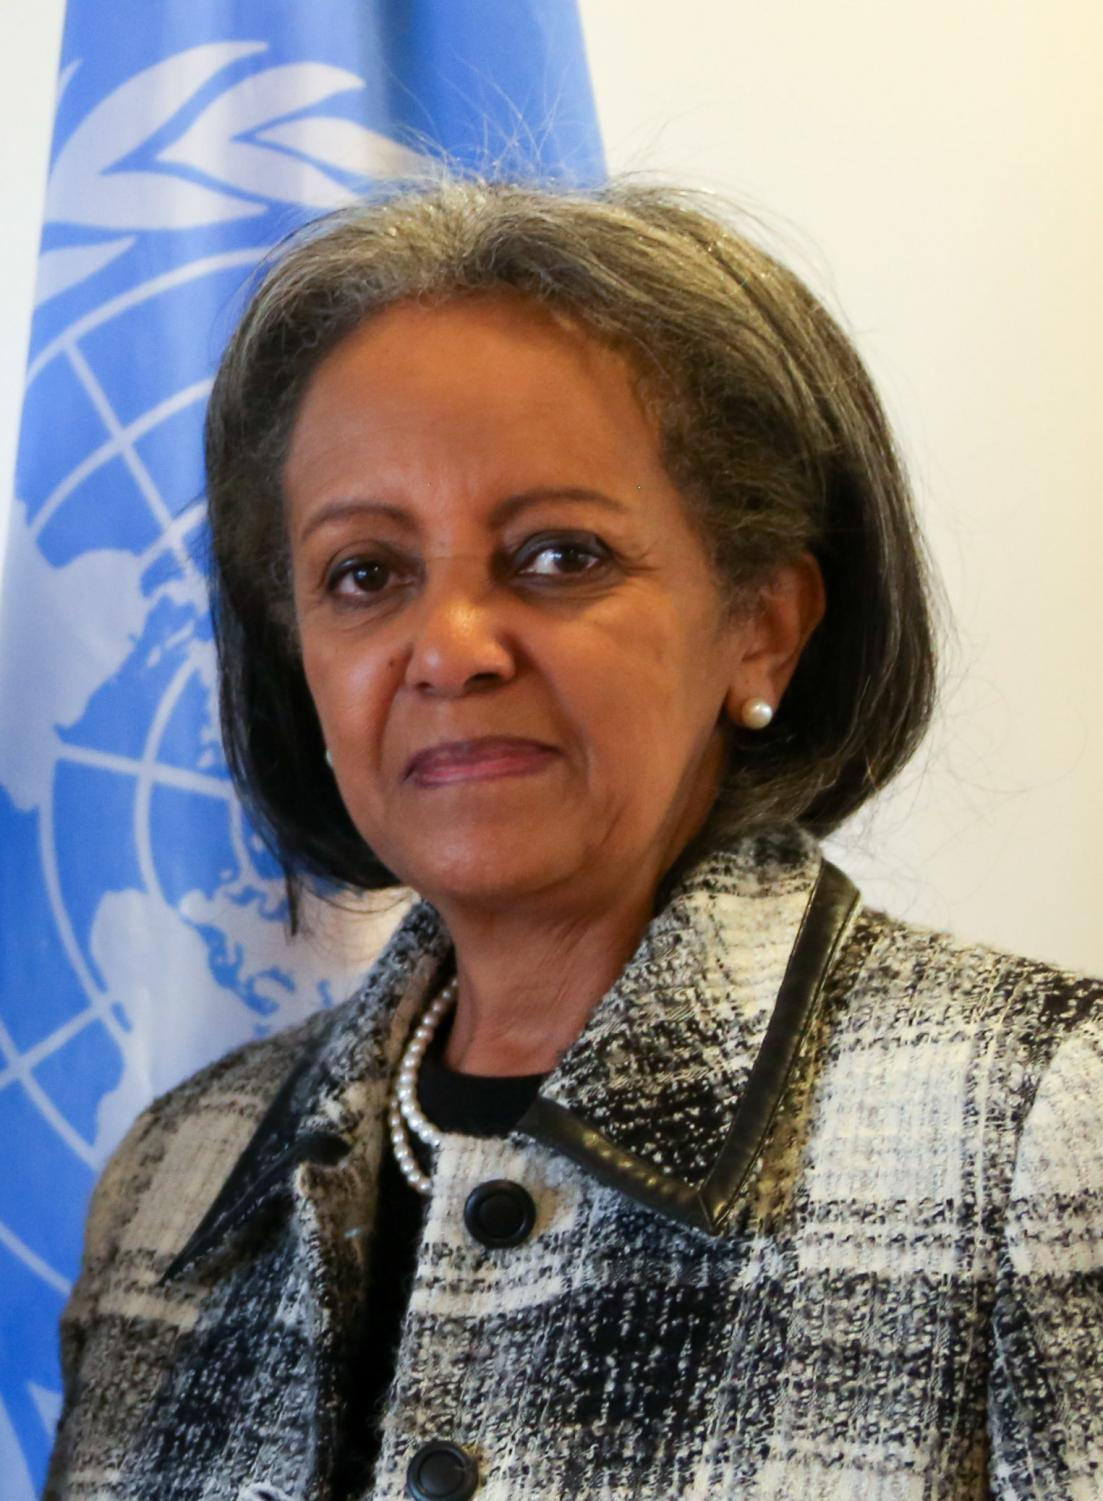 The 1st female president of Ethiopia. Photo courtesy of Creative Commons.